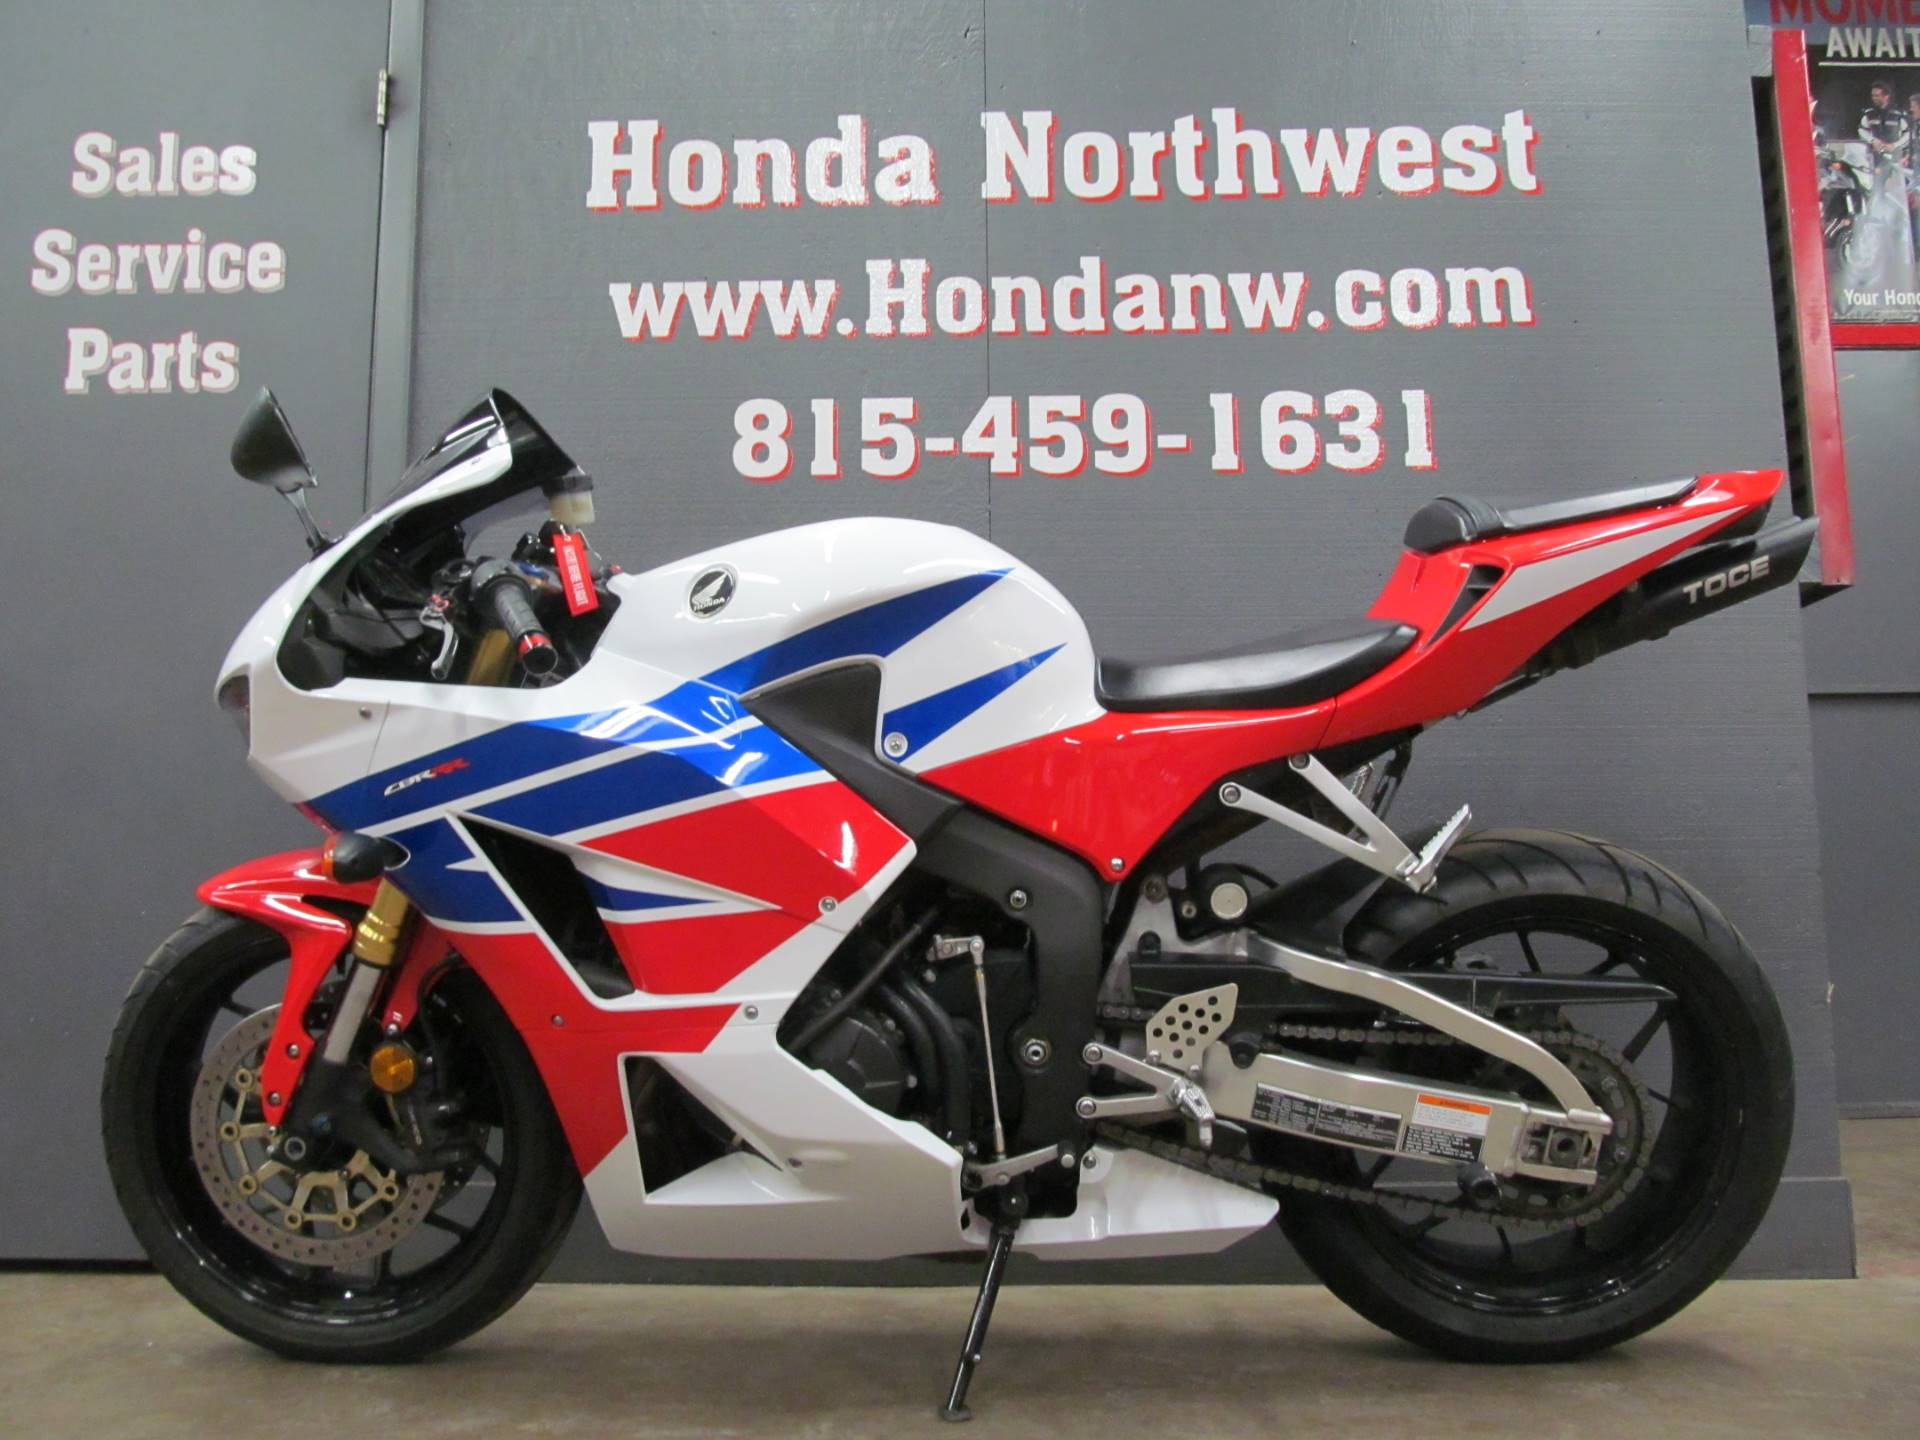 2013 Honda CBR®600RR in Crystal Lake, Illinois - Photo 2